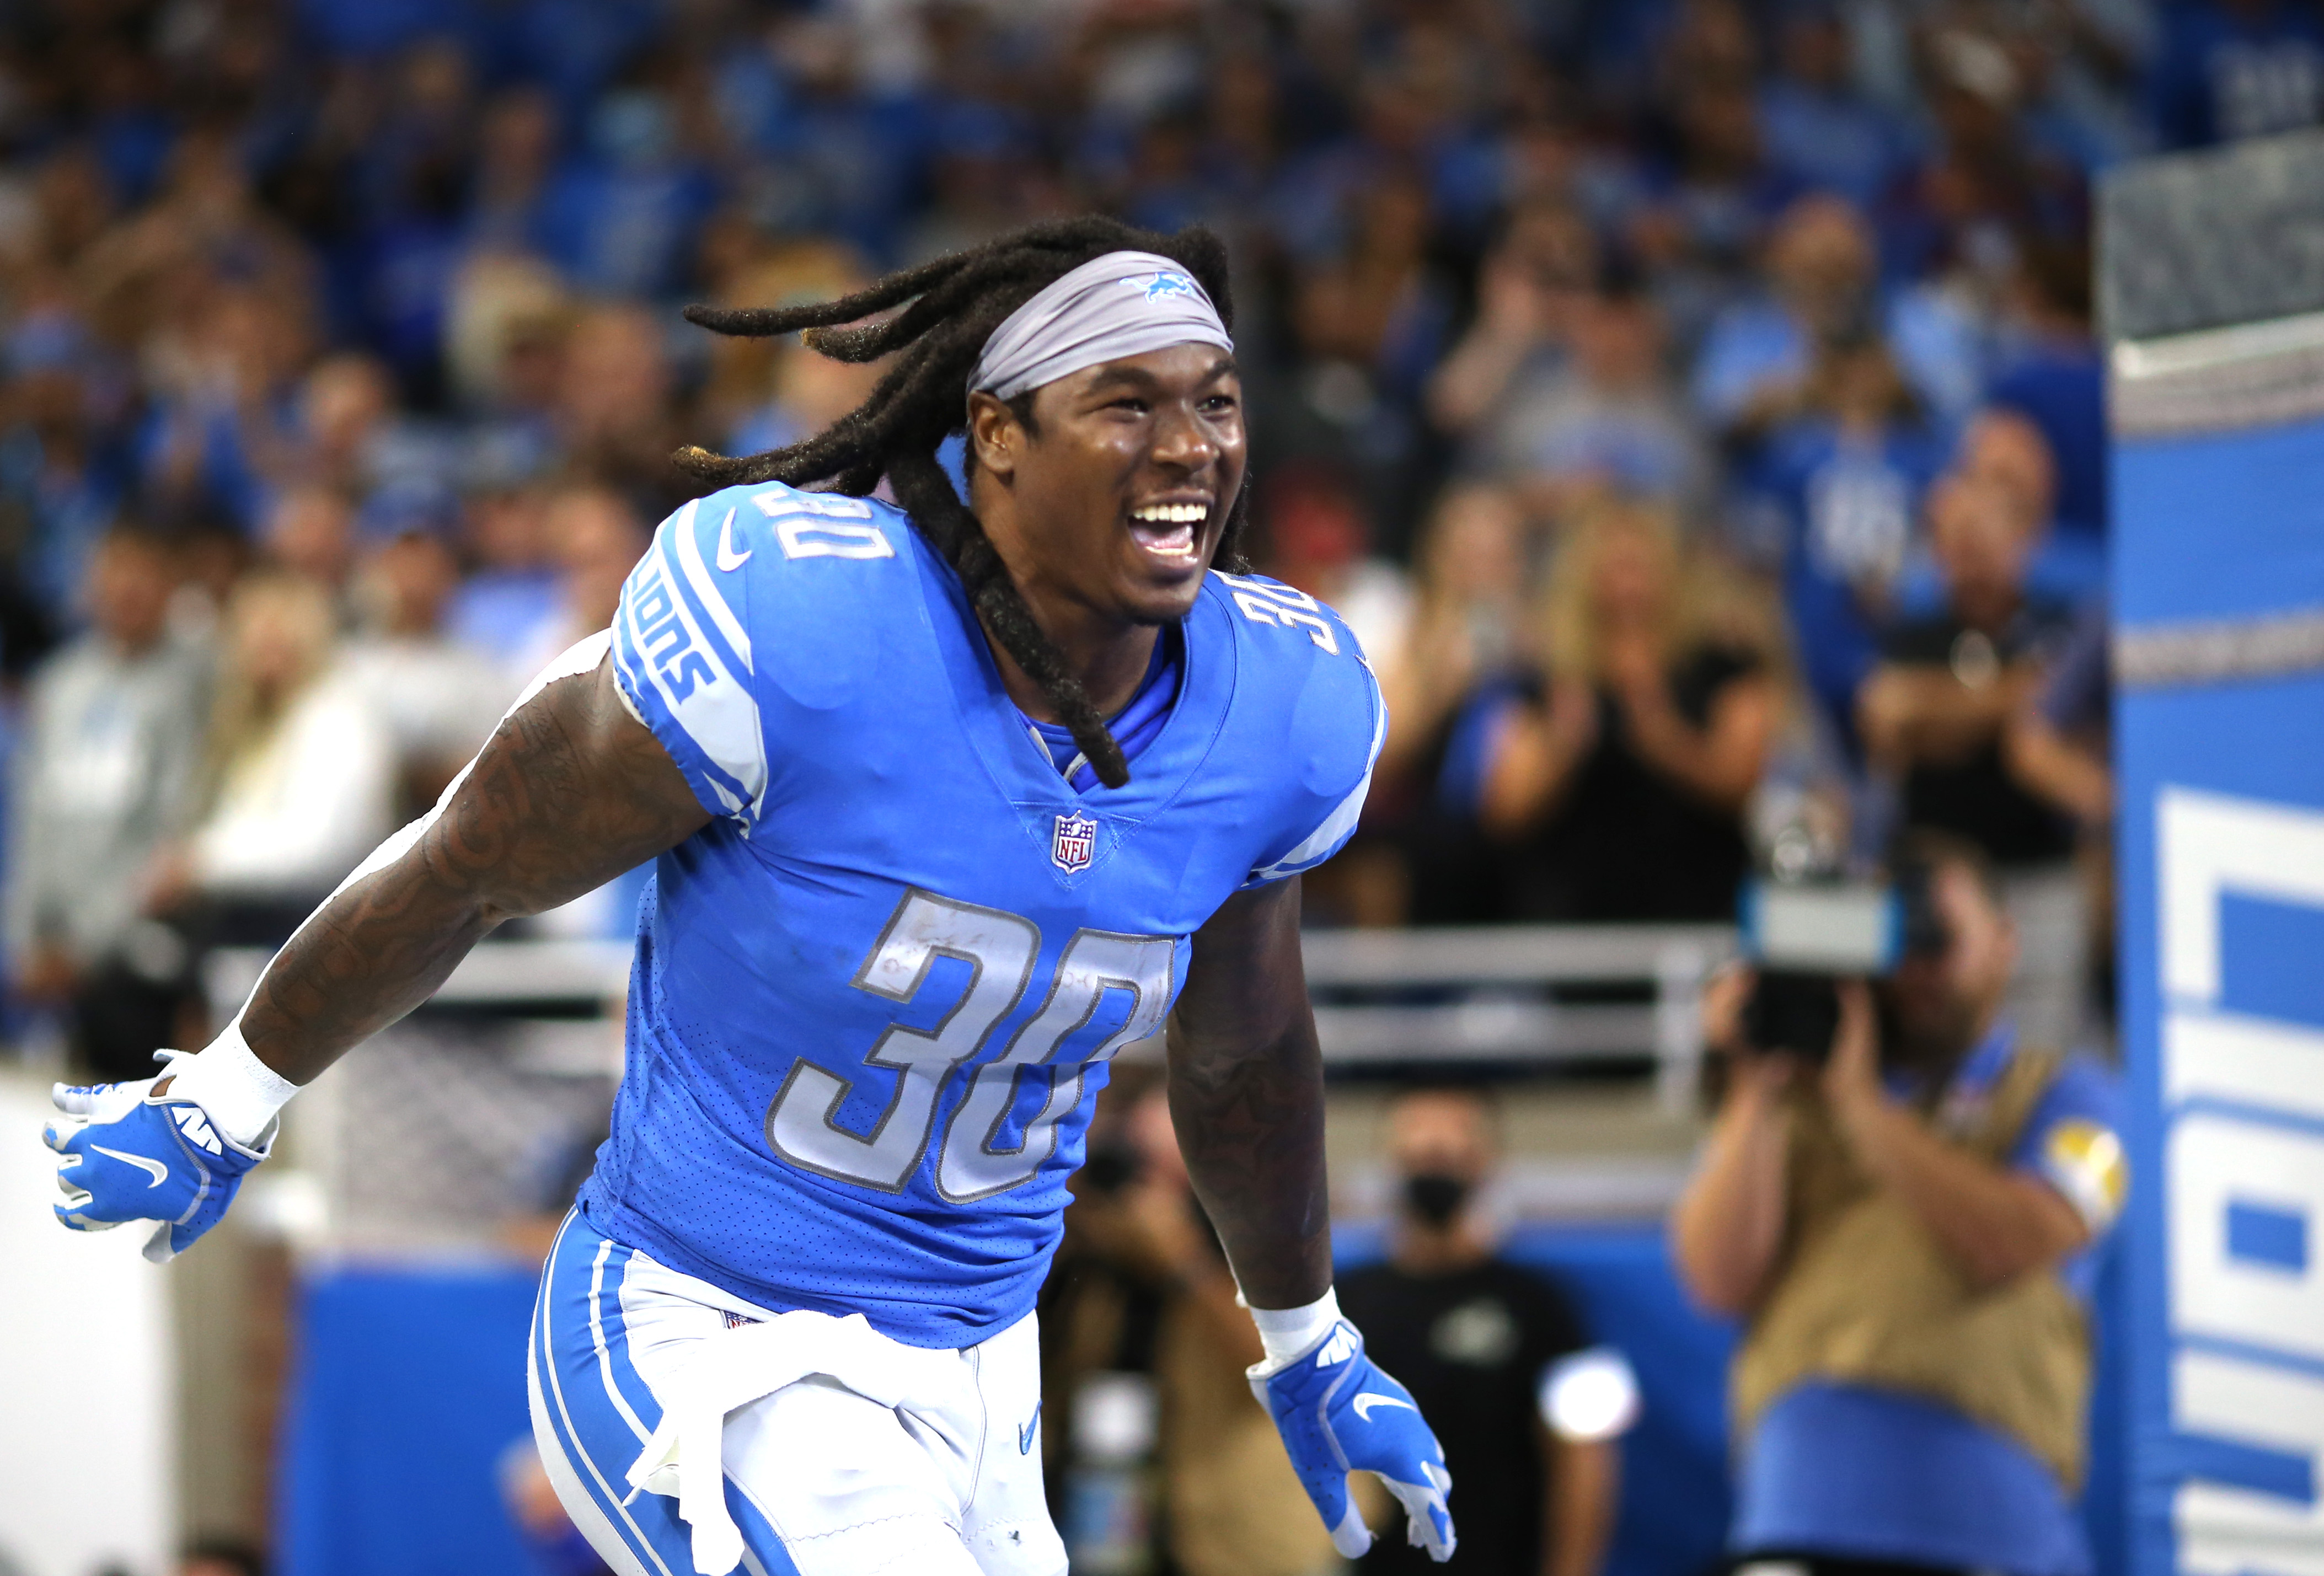 Jamaal Williams #30 of the Detroit Lions reacts as he is introduced prior to the game against the San Francisco 49ers during the first half at Ford Field on September 12, 2021 in Detroit, Michigan.